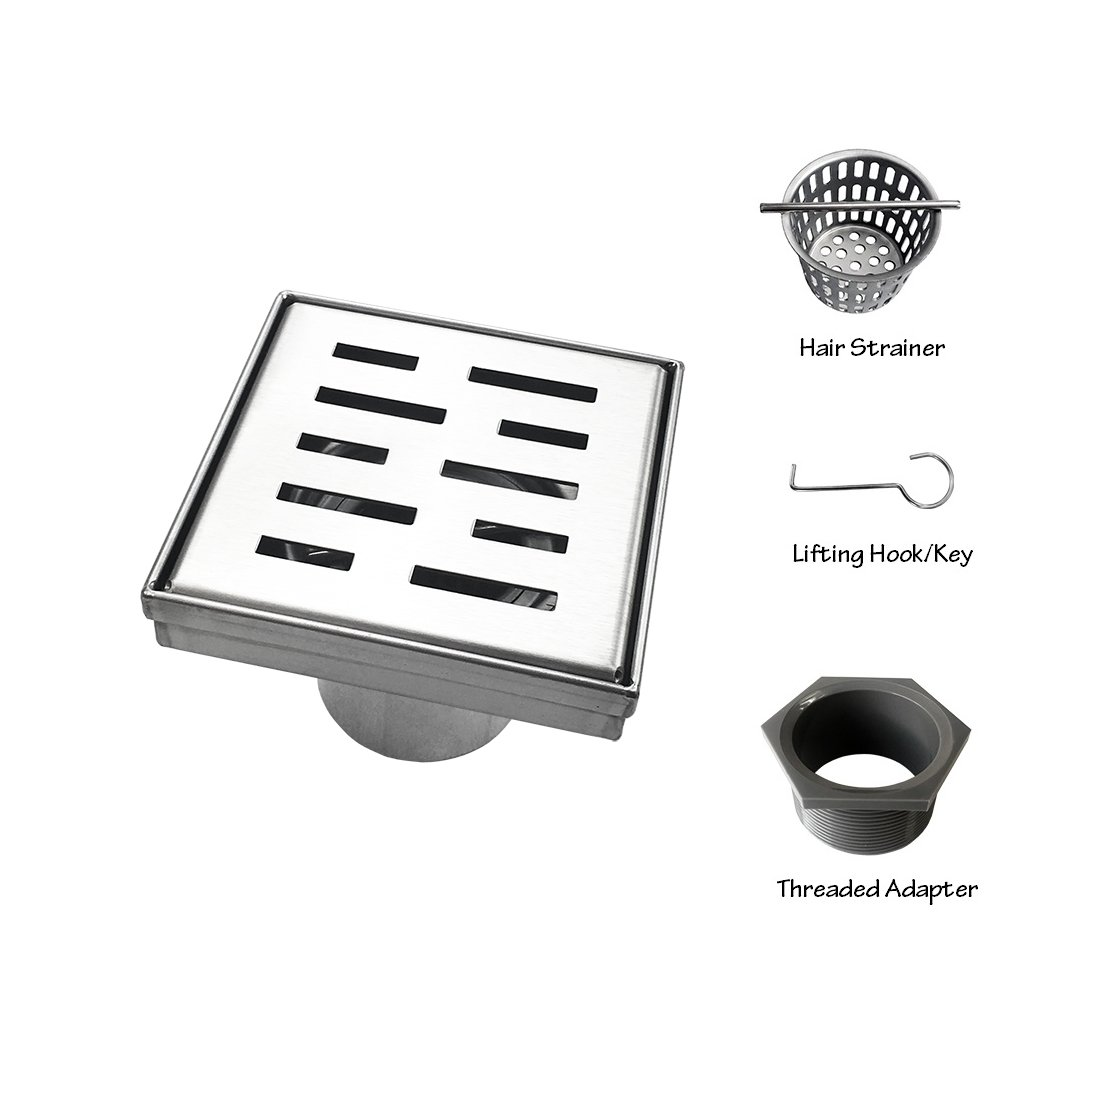 Neodrain Square Shower Drain with Removable Brick Pattern Grate, 4-Inch, Brushed 304 Stainless Steel, With WATERMARK&CUPC Certified, Includes Hair Strainer by Neodrain (Image #3)